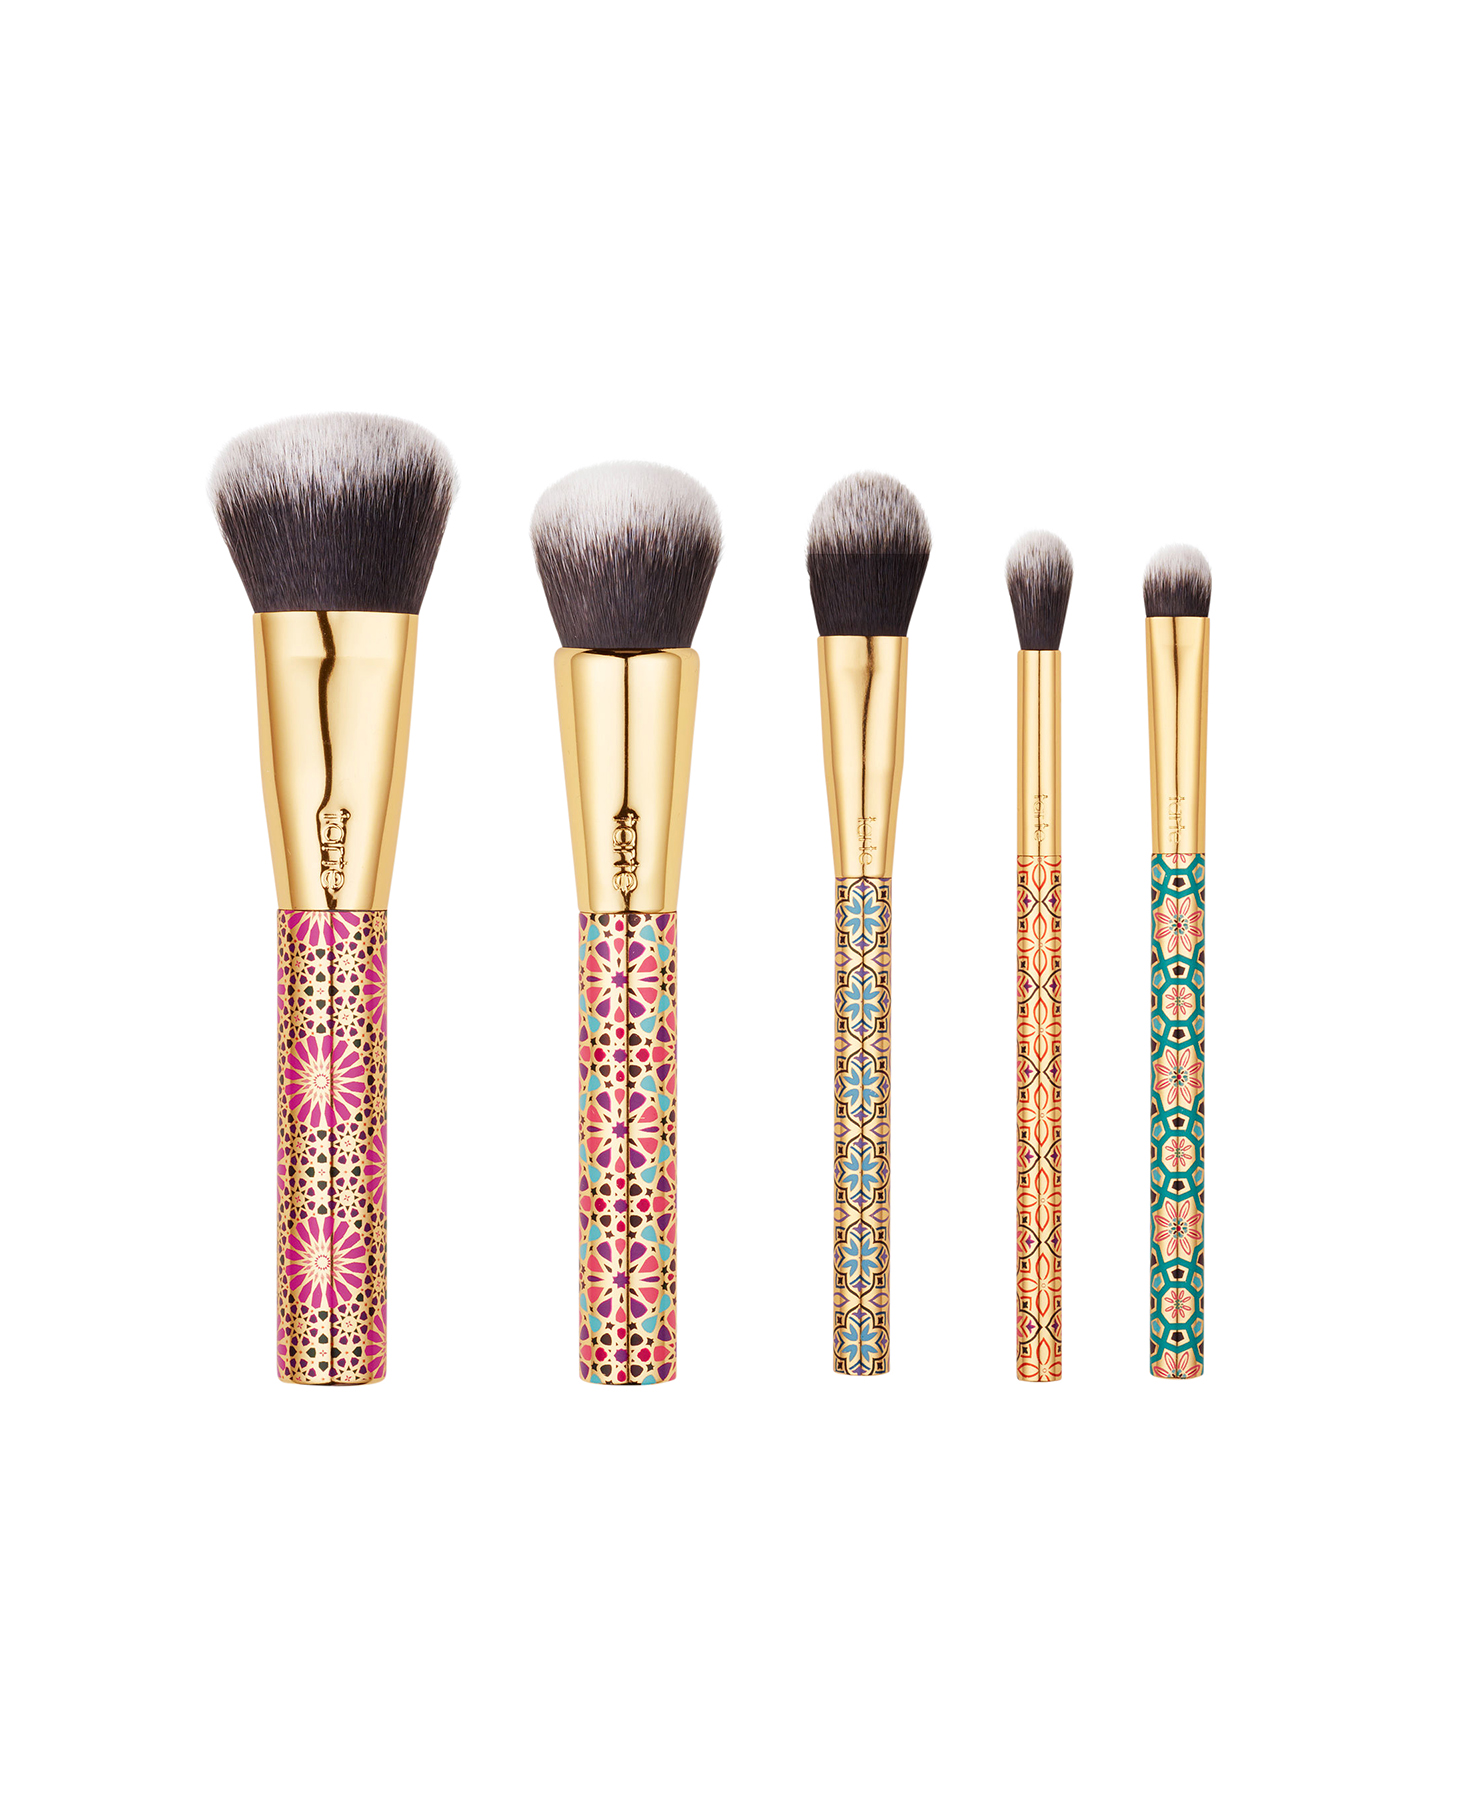 Tarte Artful Accessories Brush Set